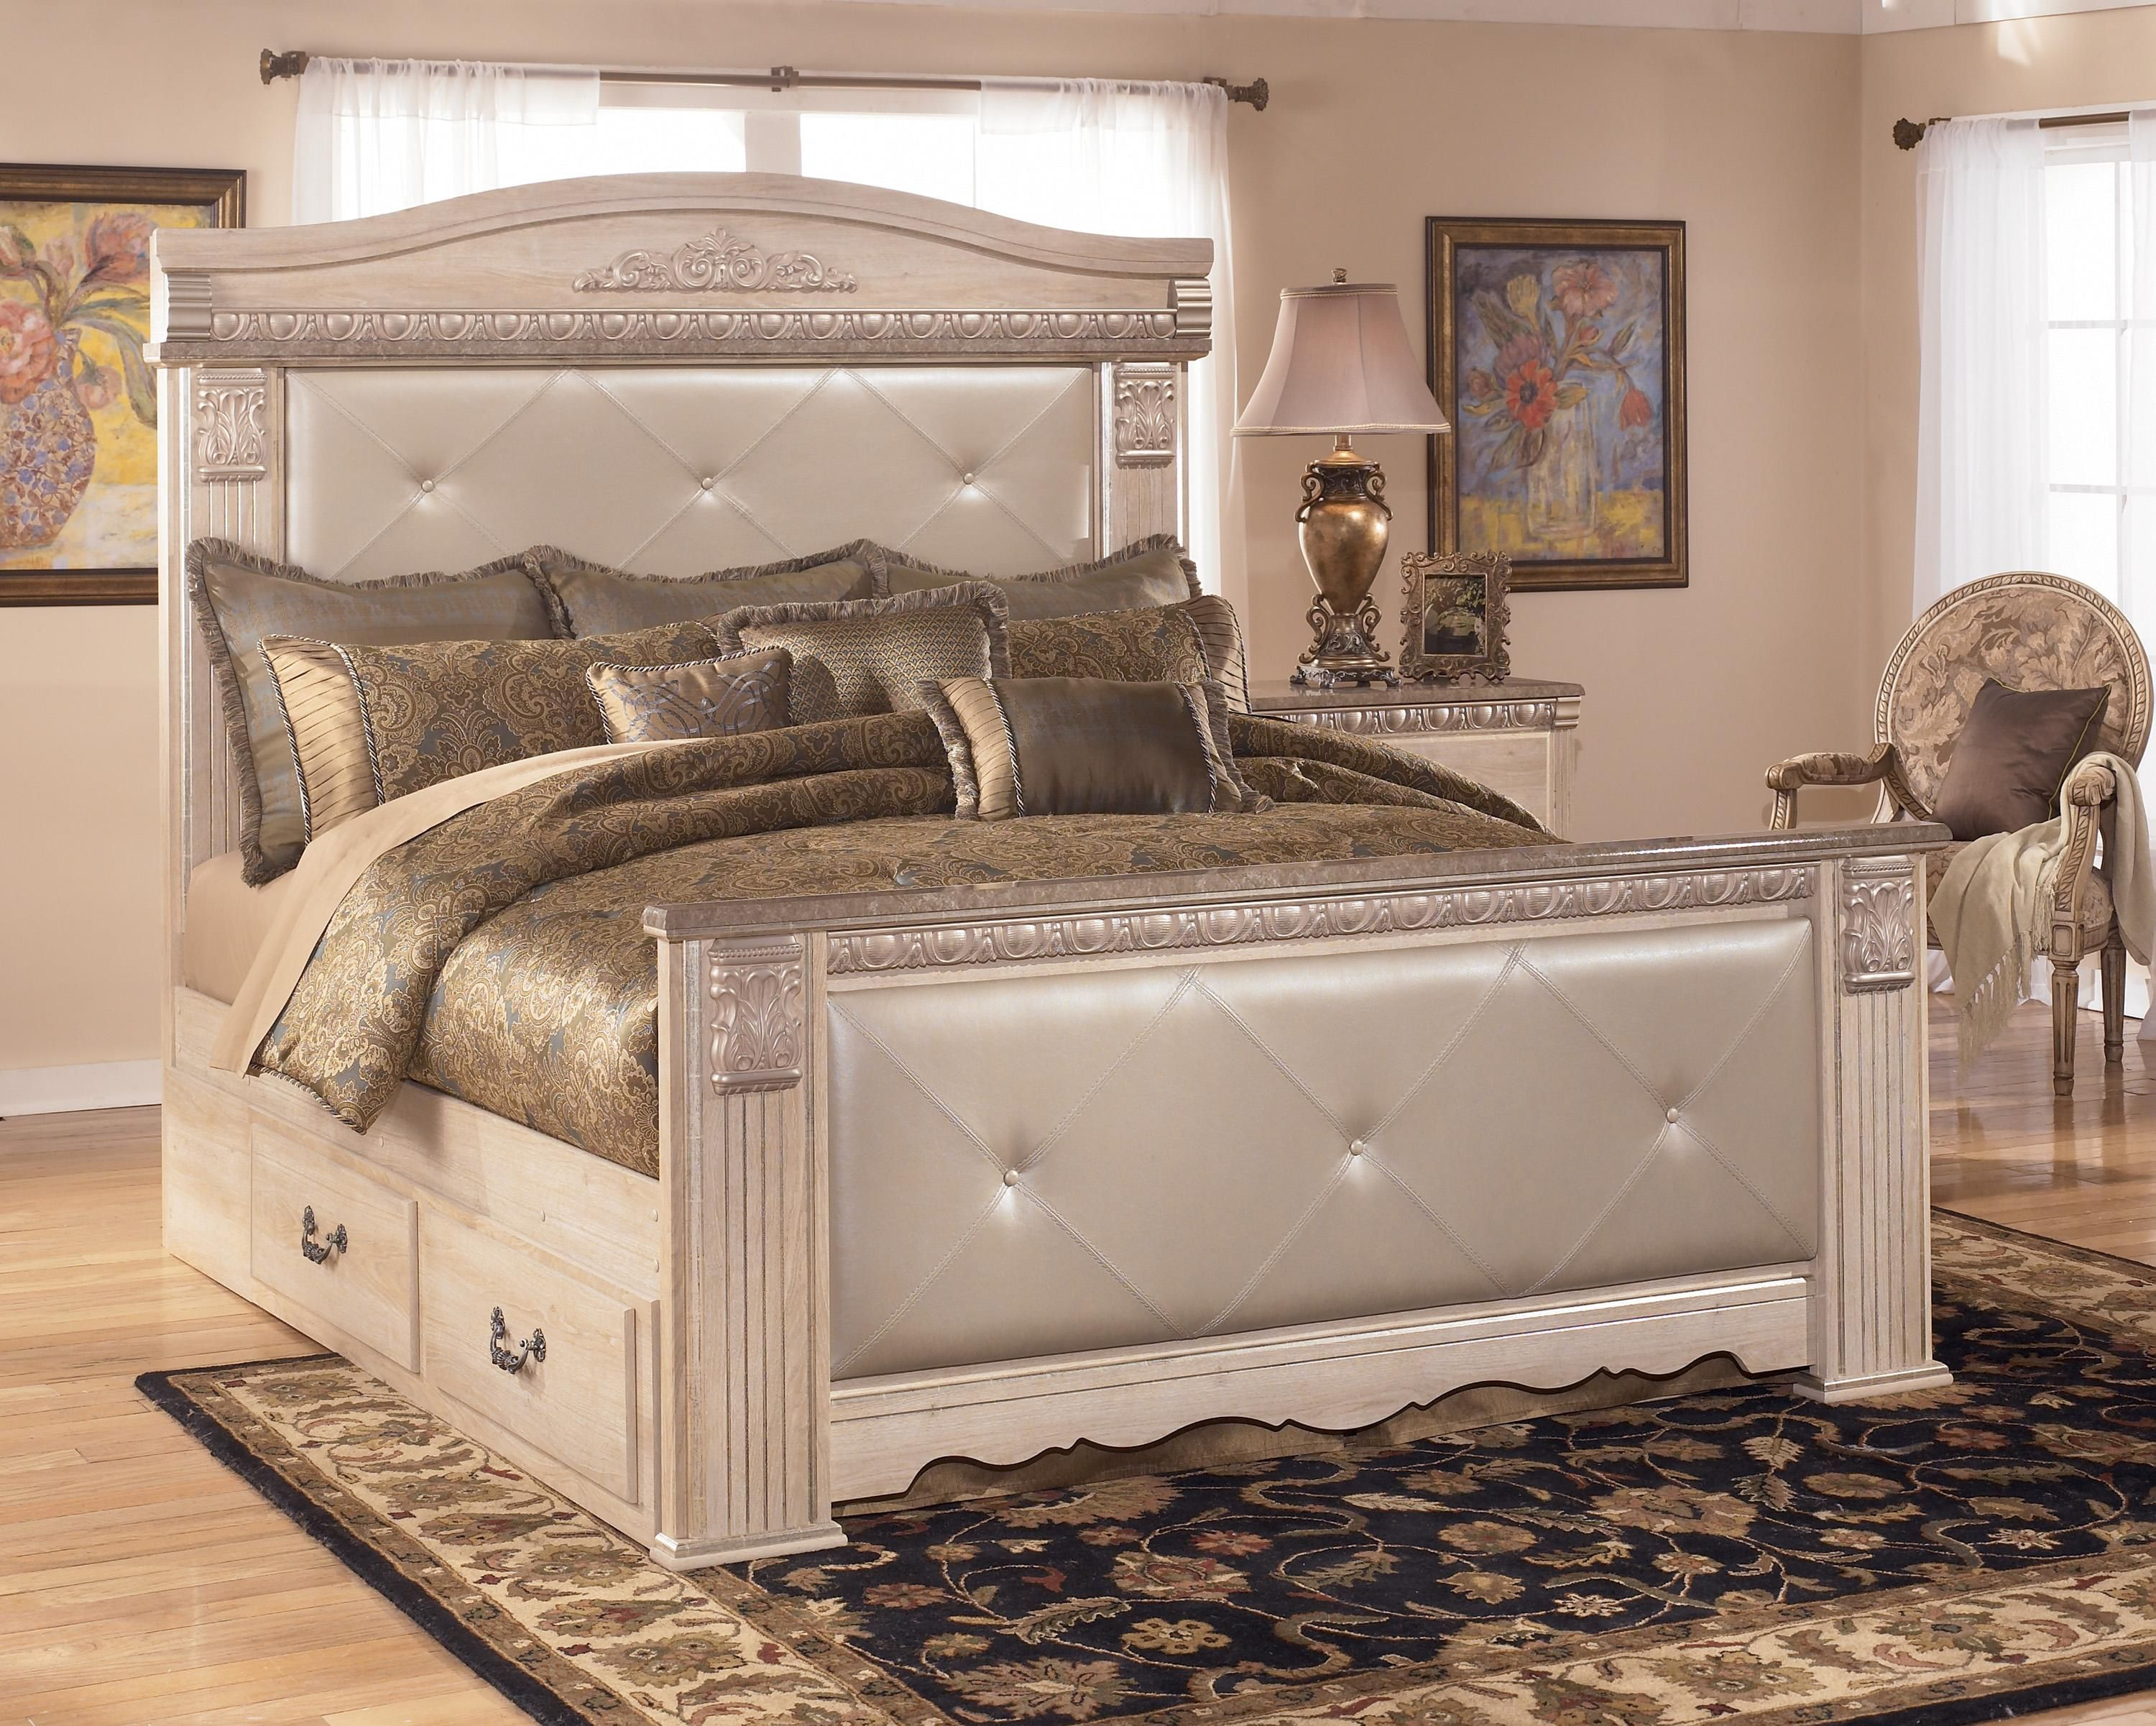 Silverglade King Upholstered Mansion Bed With Storage By Signature